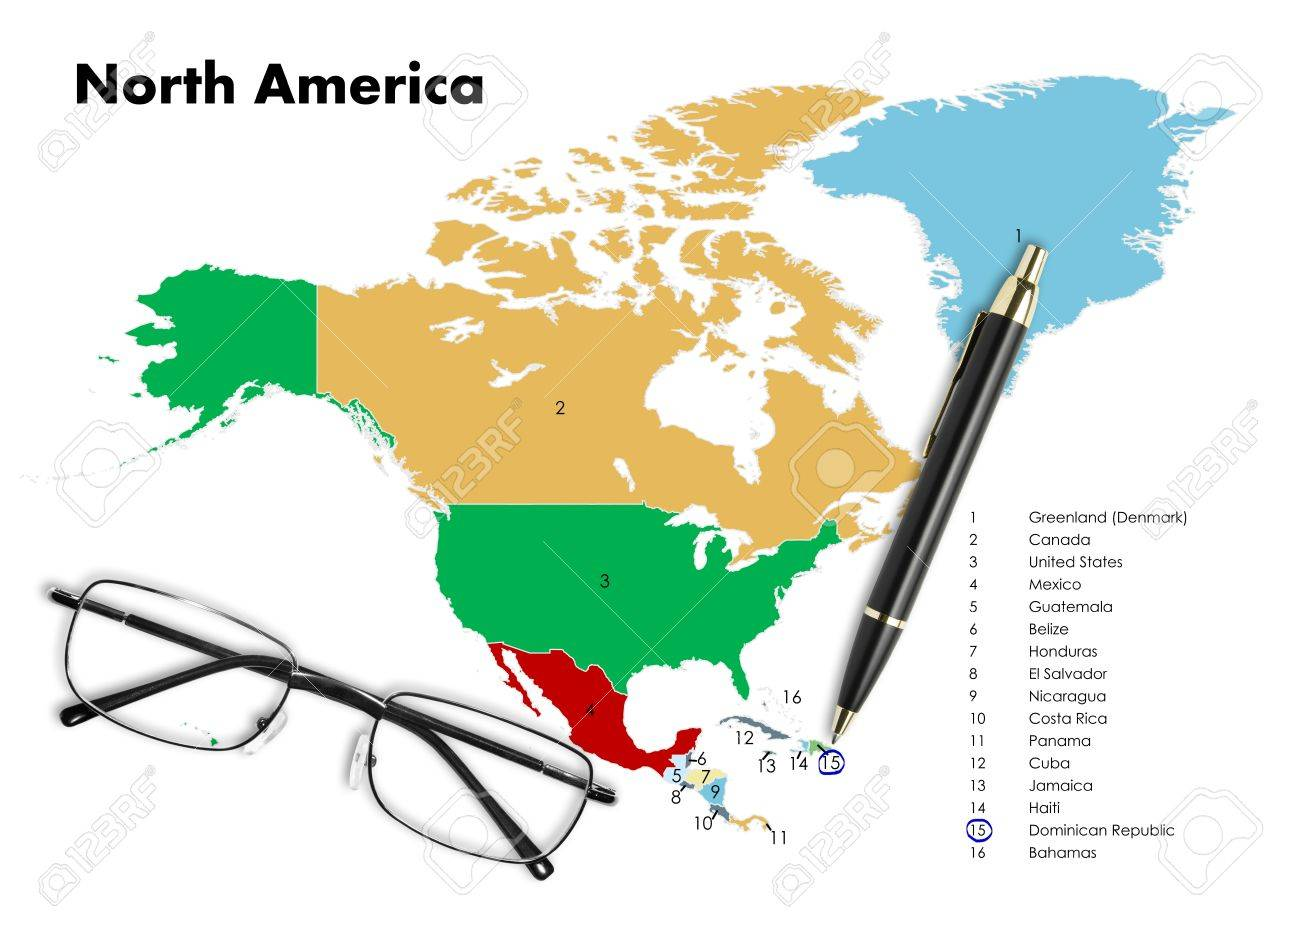 Dominican Republic On Haiti On North America Map With Pen